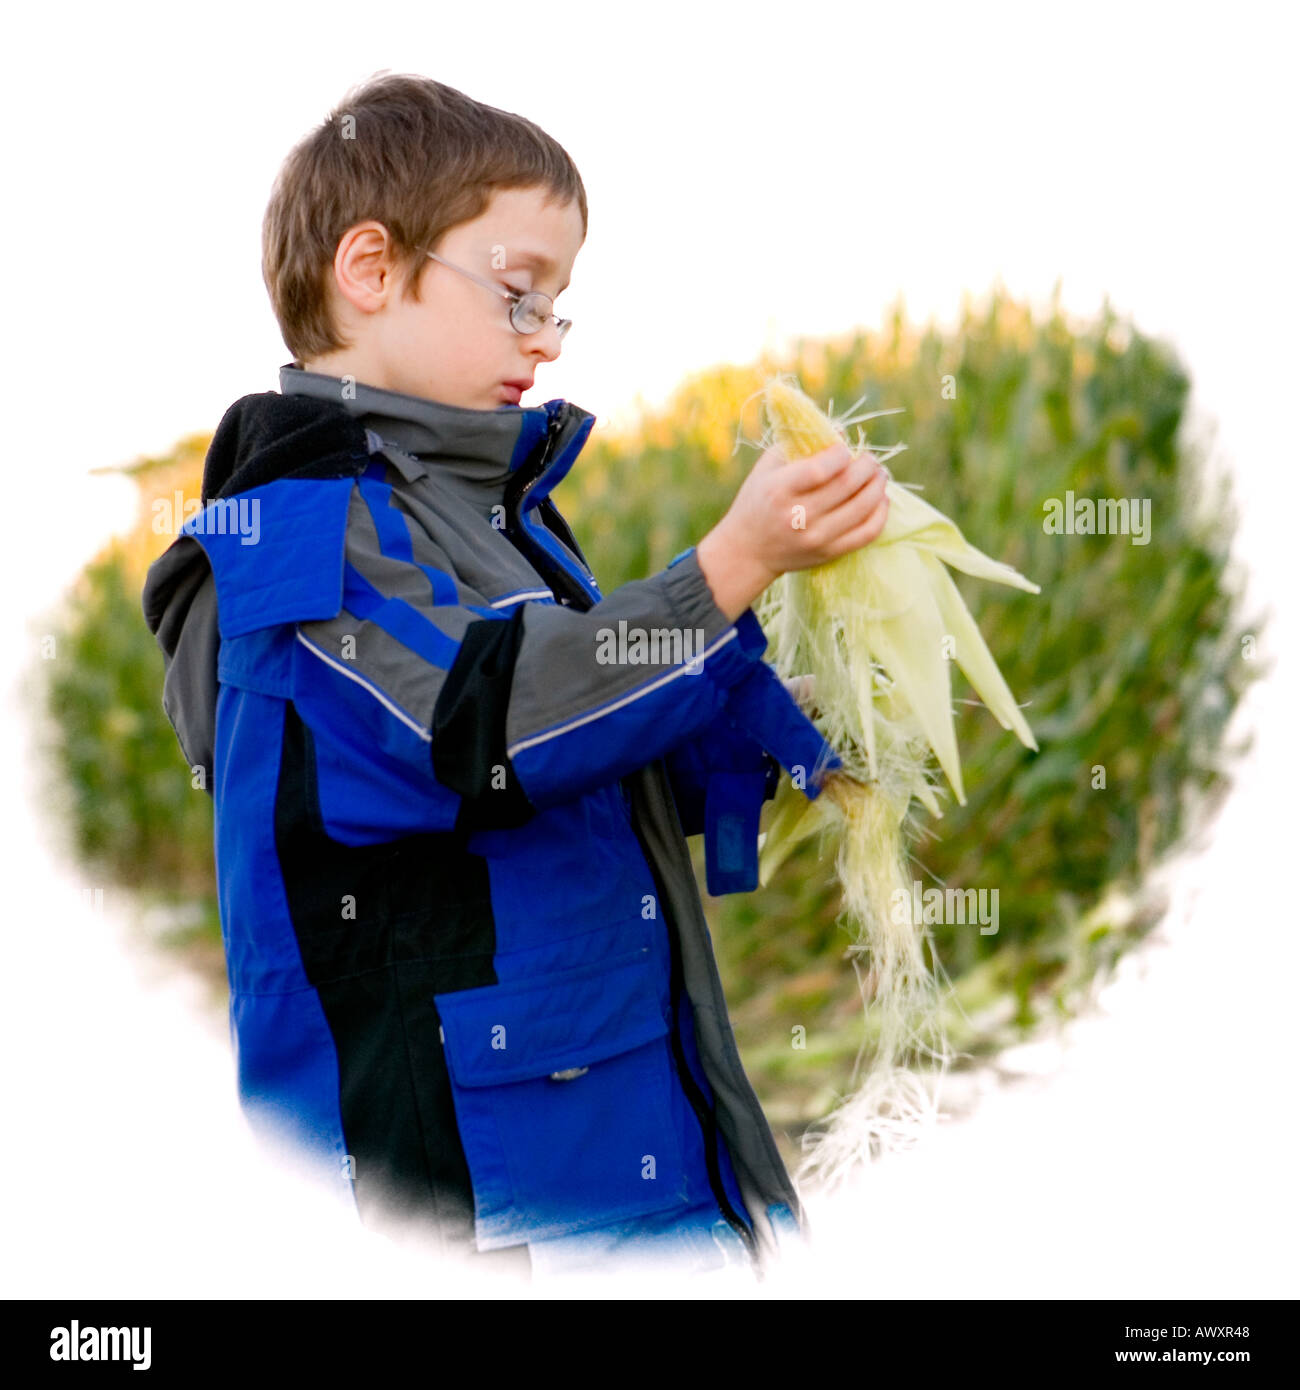 young boy in a cornfield taking the husk off an ear of corn RESTRICTIONS NO AGRICULTURAL INDUSTRY USAGE - Stock Image